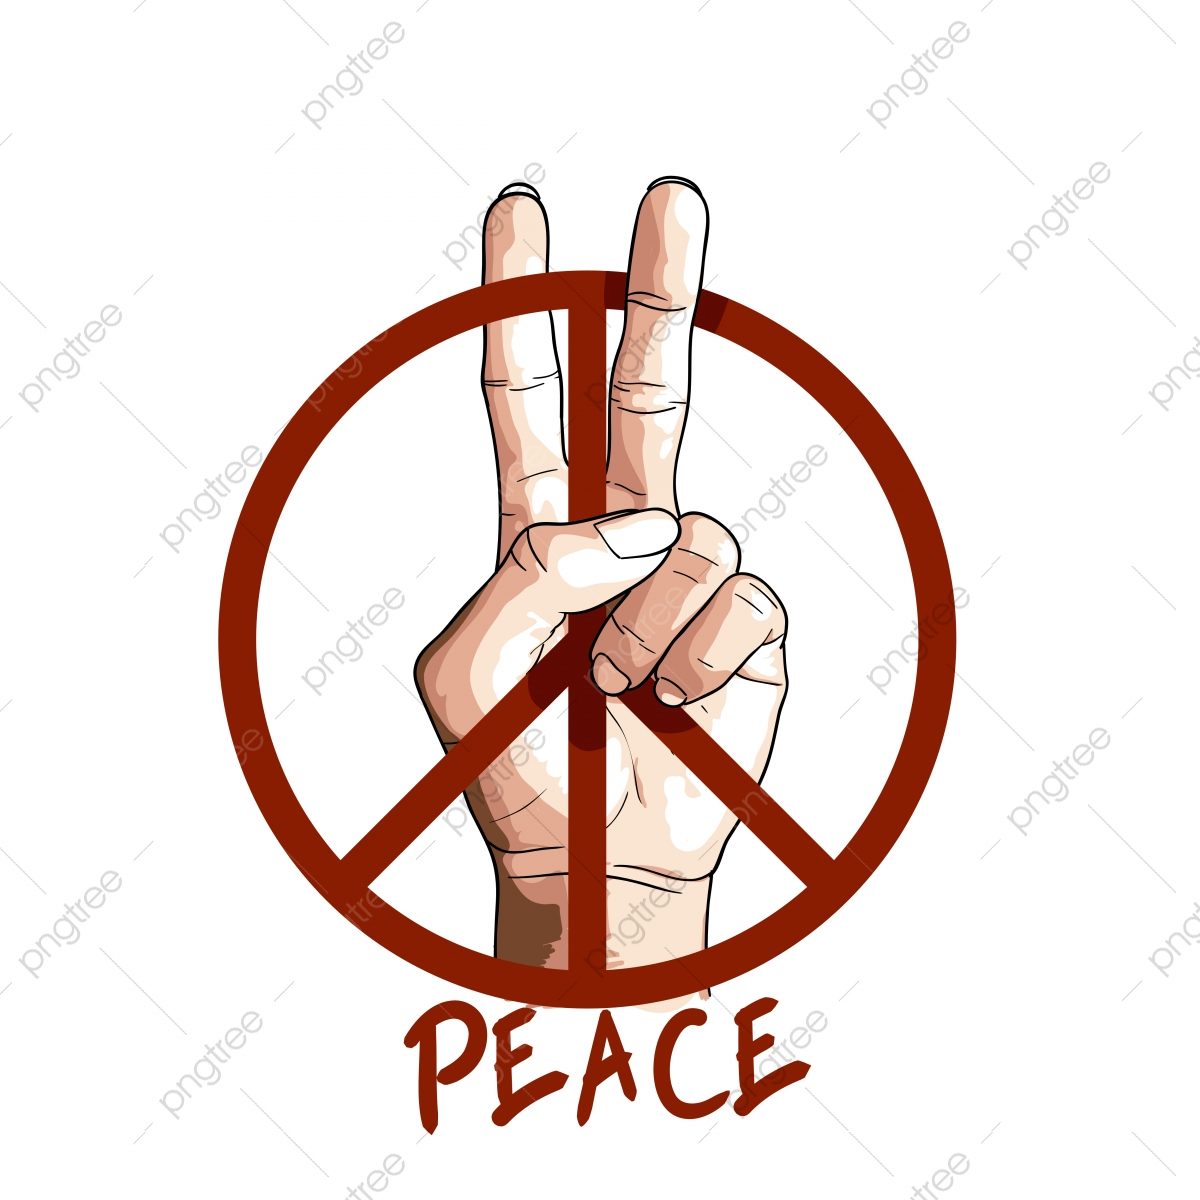 Hand In Peace Sign 2 Communicate Double Png And Vector With Transparent Background For Free Download Seeking for free png peace sign png images? https pngtree com freepng hand in peace sign 4341534 html